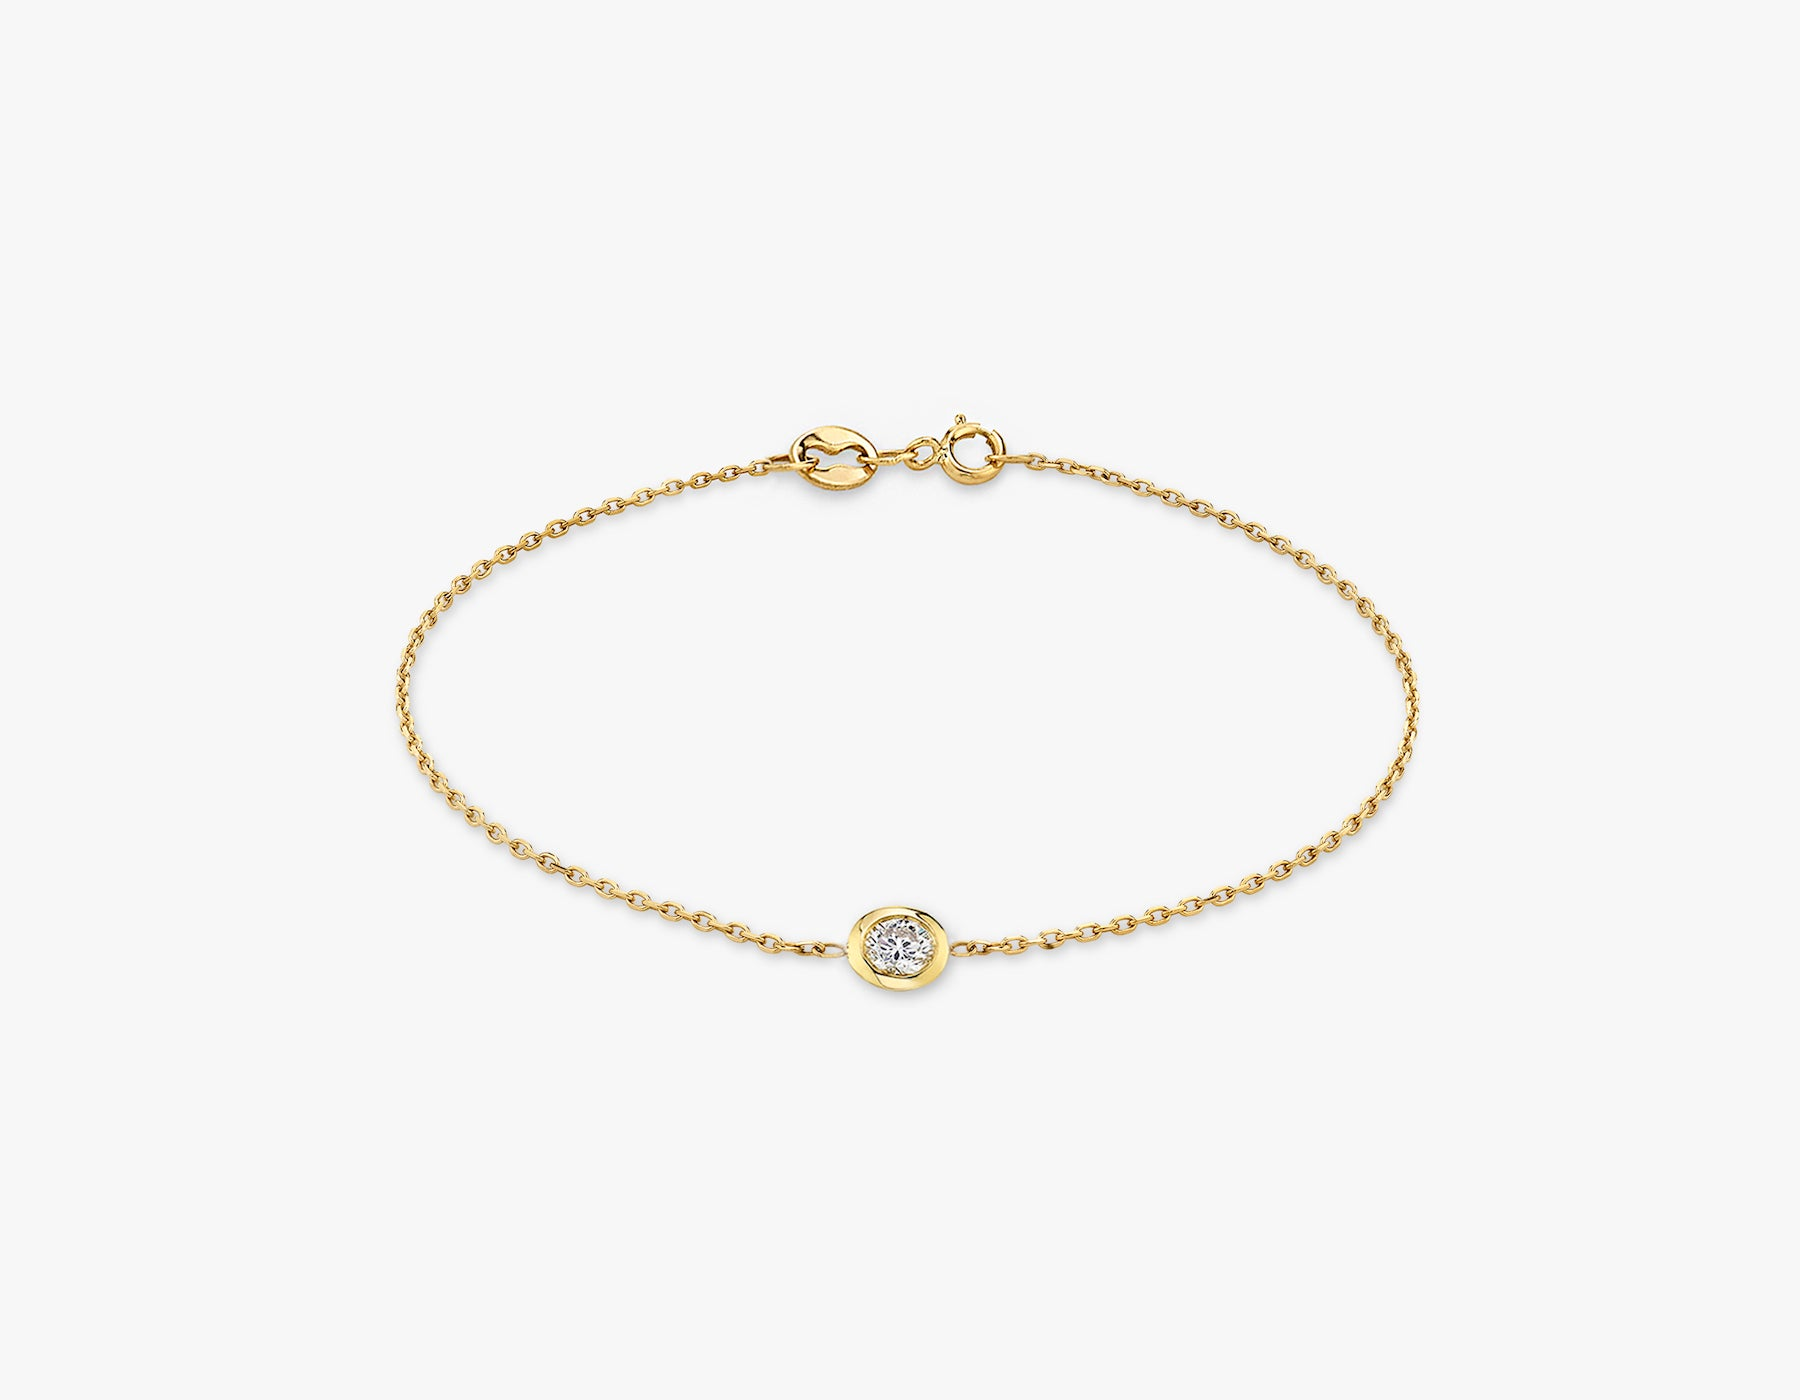 Vrai simple minimalist Round Diamond Bezel Bracelet, 14K Yellow Gold